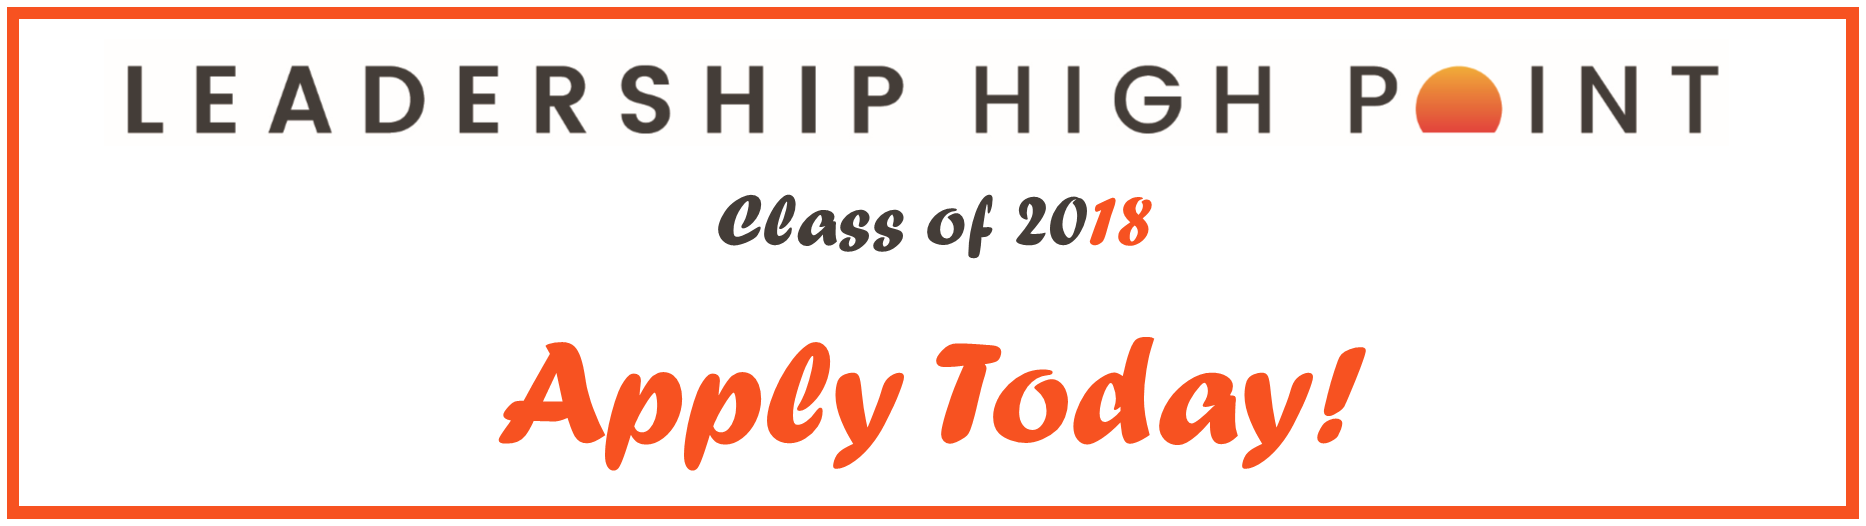 LHP-2018-Apply-today.png